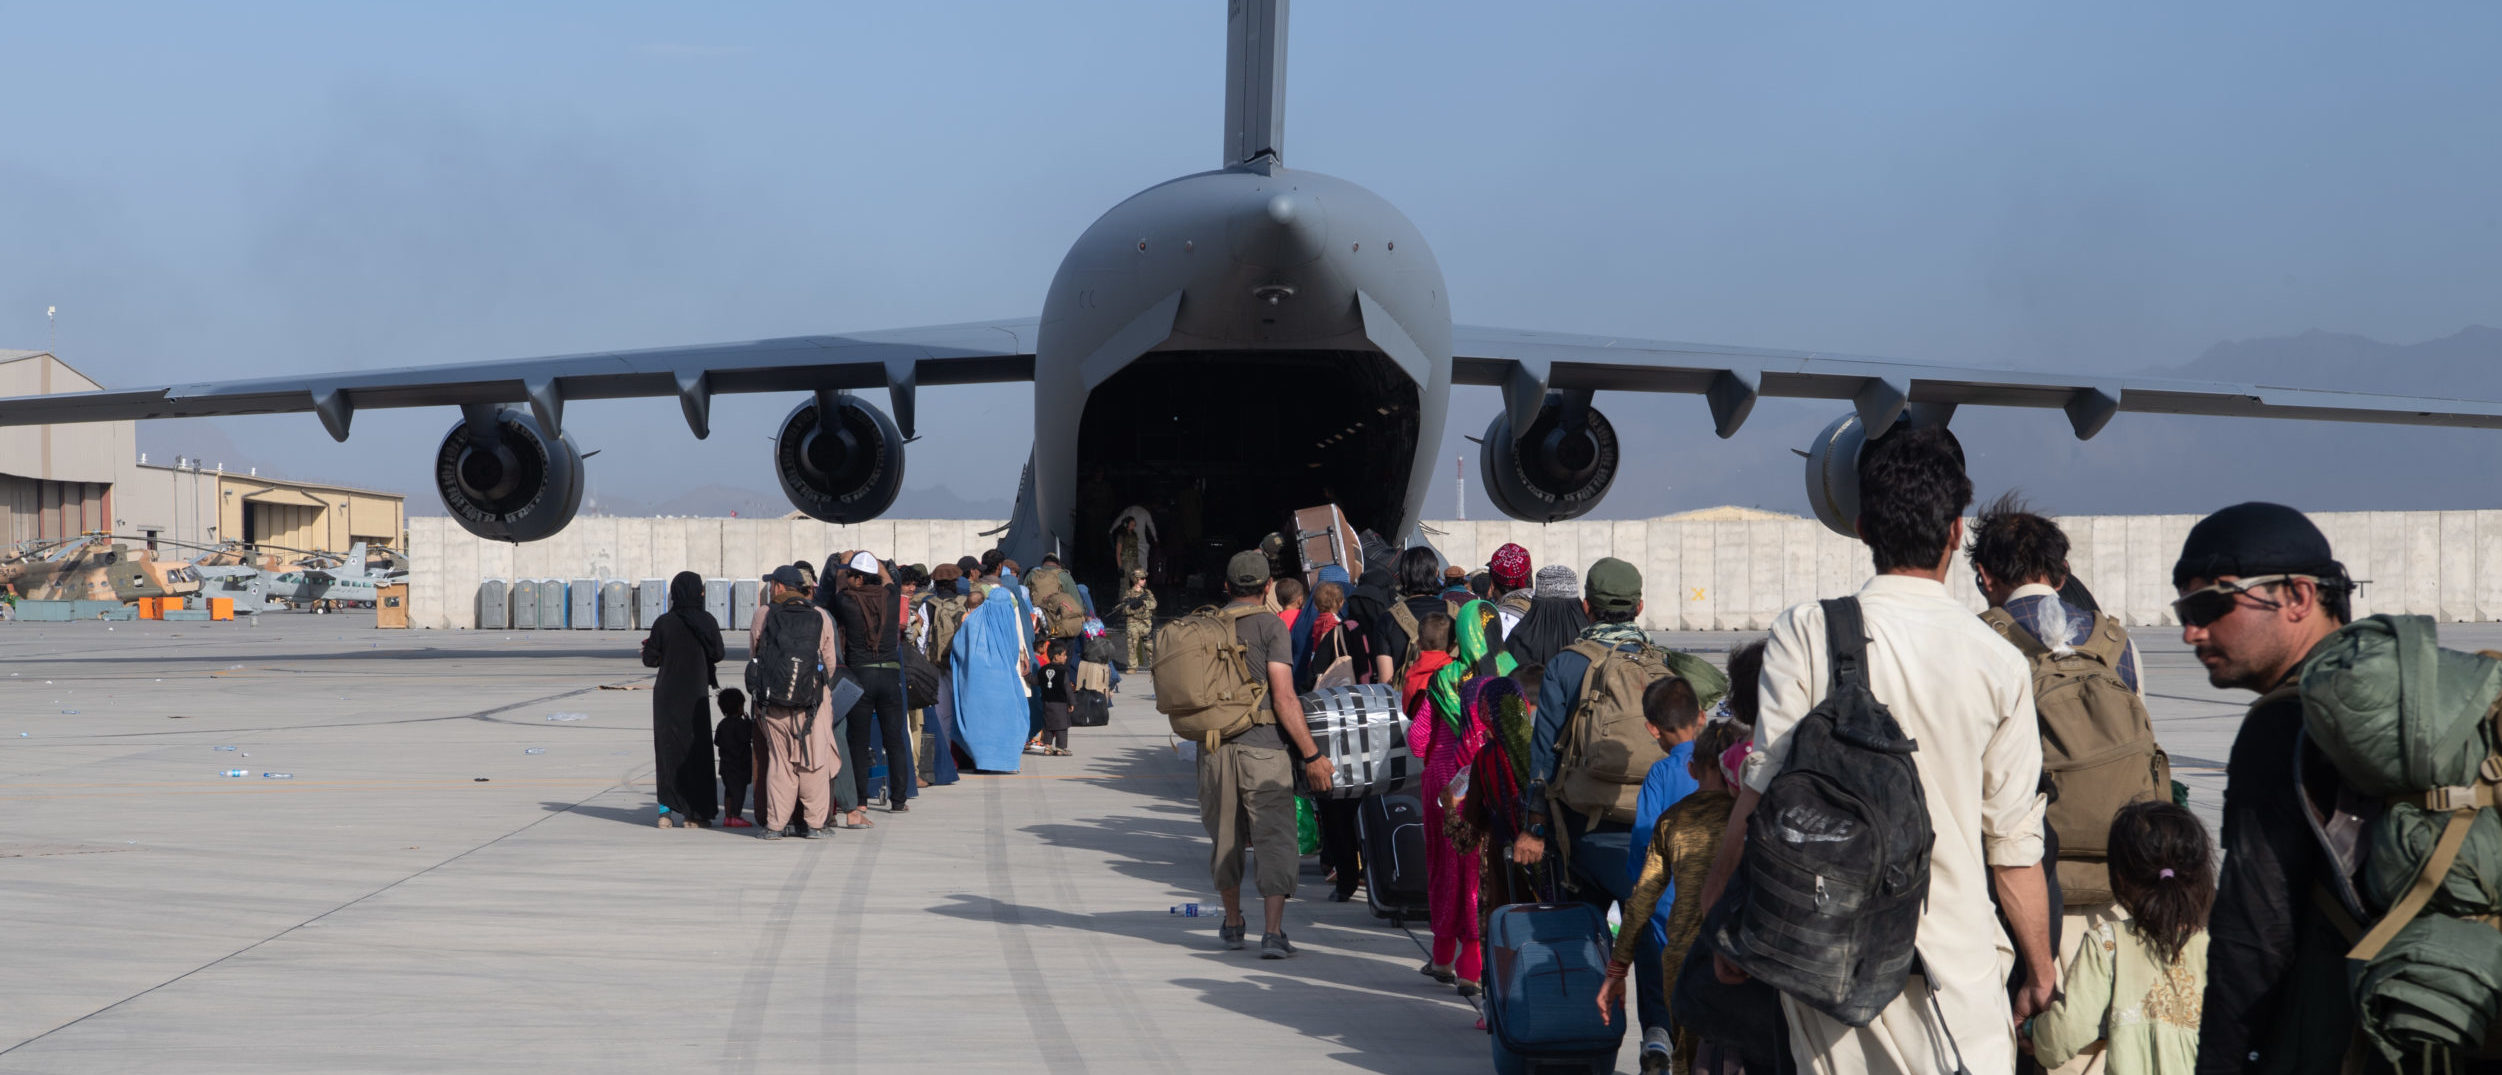 KABUL, AFGHANISTAN - AUGUST 24: In this handout provided by U.S. Central Command Public Affairs, U.S. Air Force loadmasters and pilots assigned to the 816th Expeditionary Airlift Squadron, load passengers aboard a U.S. Air Force C-17 Globemaster III in support of the Afghanistan evacuation at Hamid Karzai International Airport (HKIA) on August 24, 2021 in Kabul, Afghanistan. The United States and allies urged Afghans to leave Kabul airport, citing the threat of terrorist attacks, as Western troops race to evacuate as many people as possible by August 31. (Photo by Master Sgt. Donald R. Allen/U.S. Air Forces Europe-Africa via Getty Images)